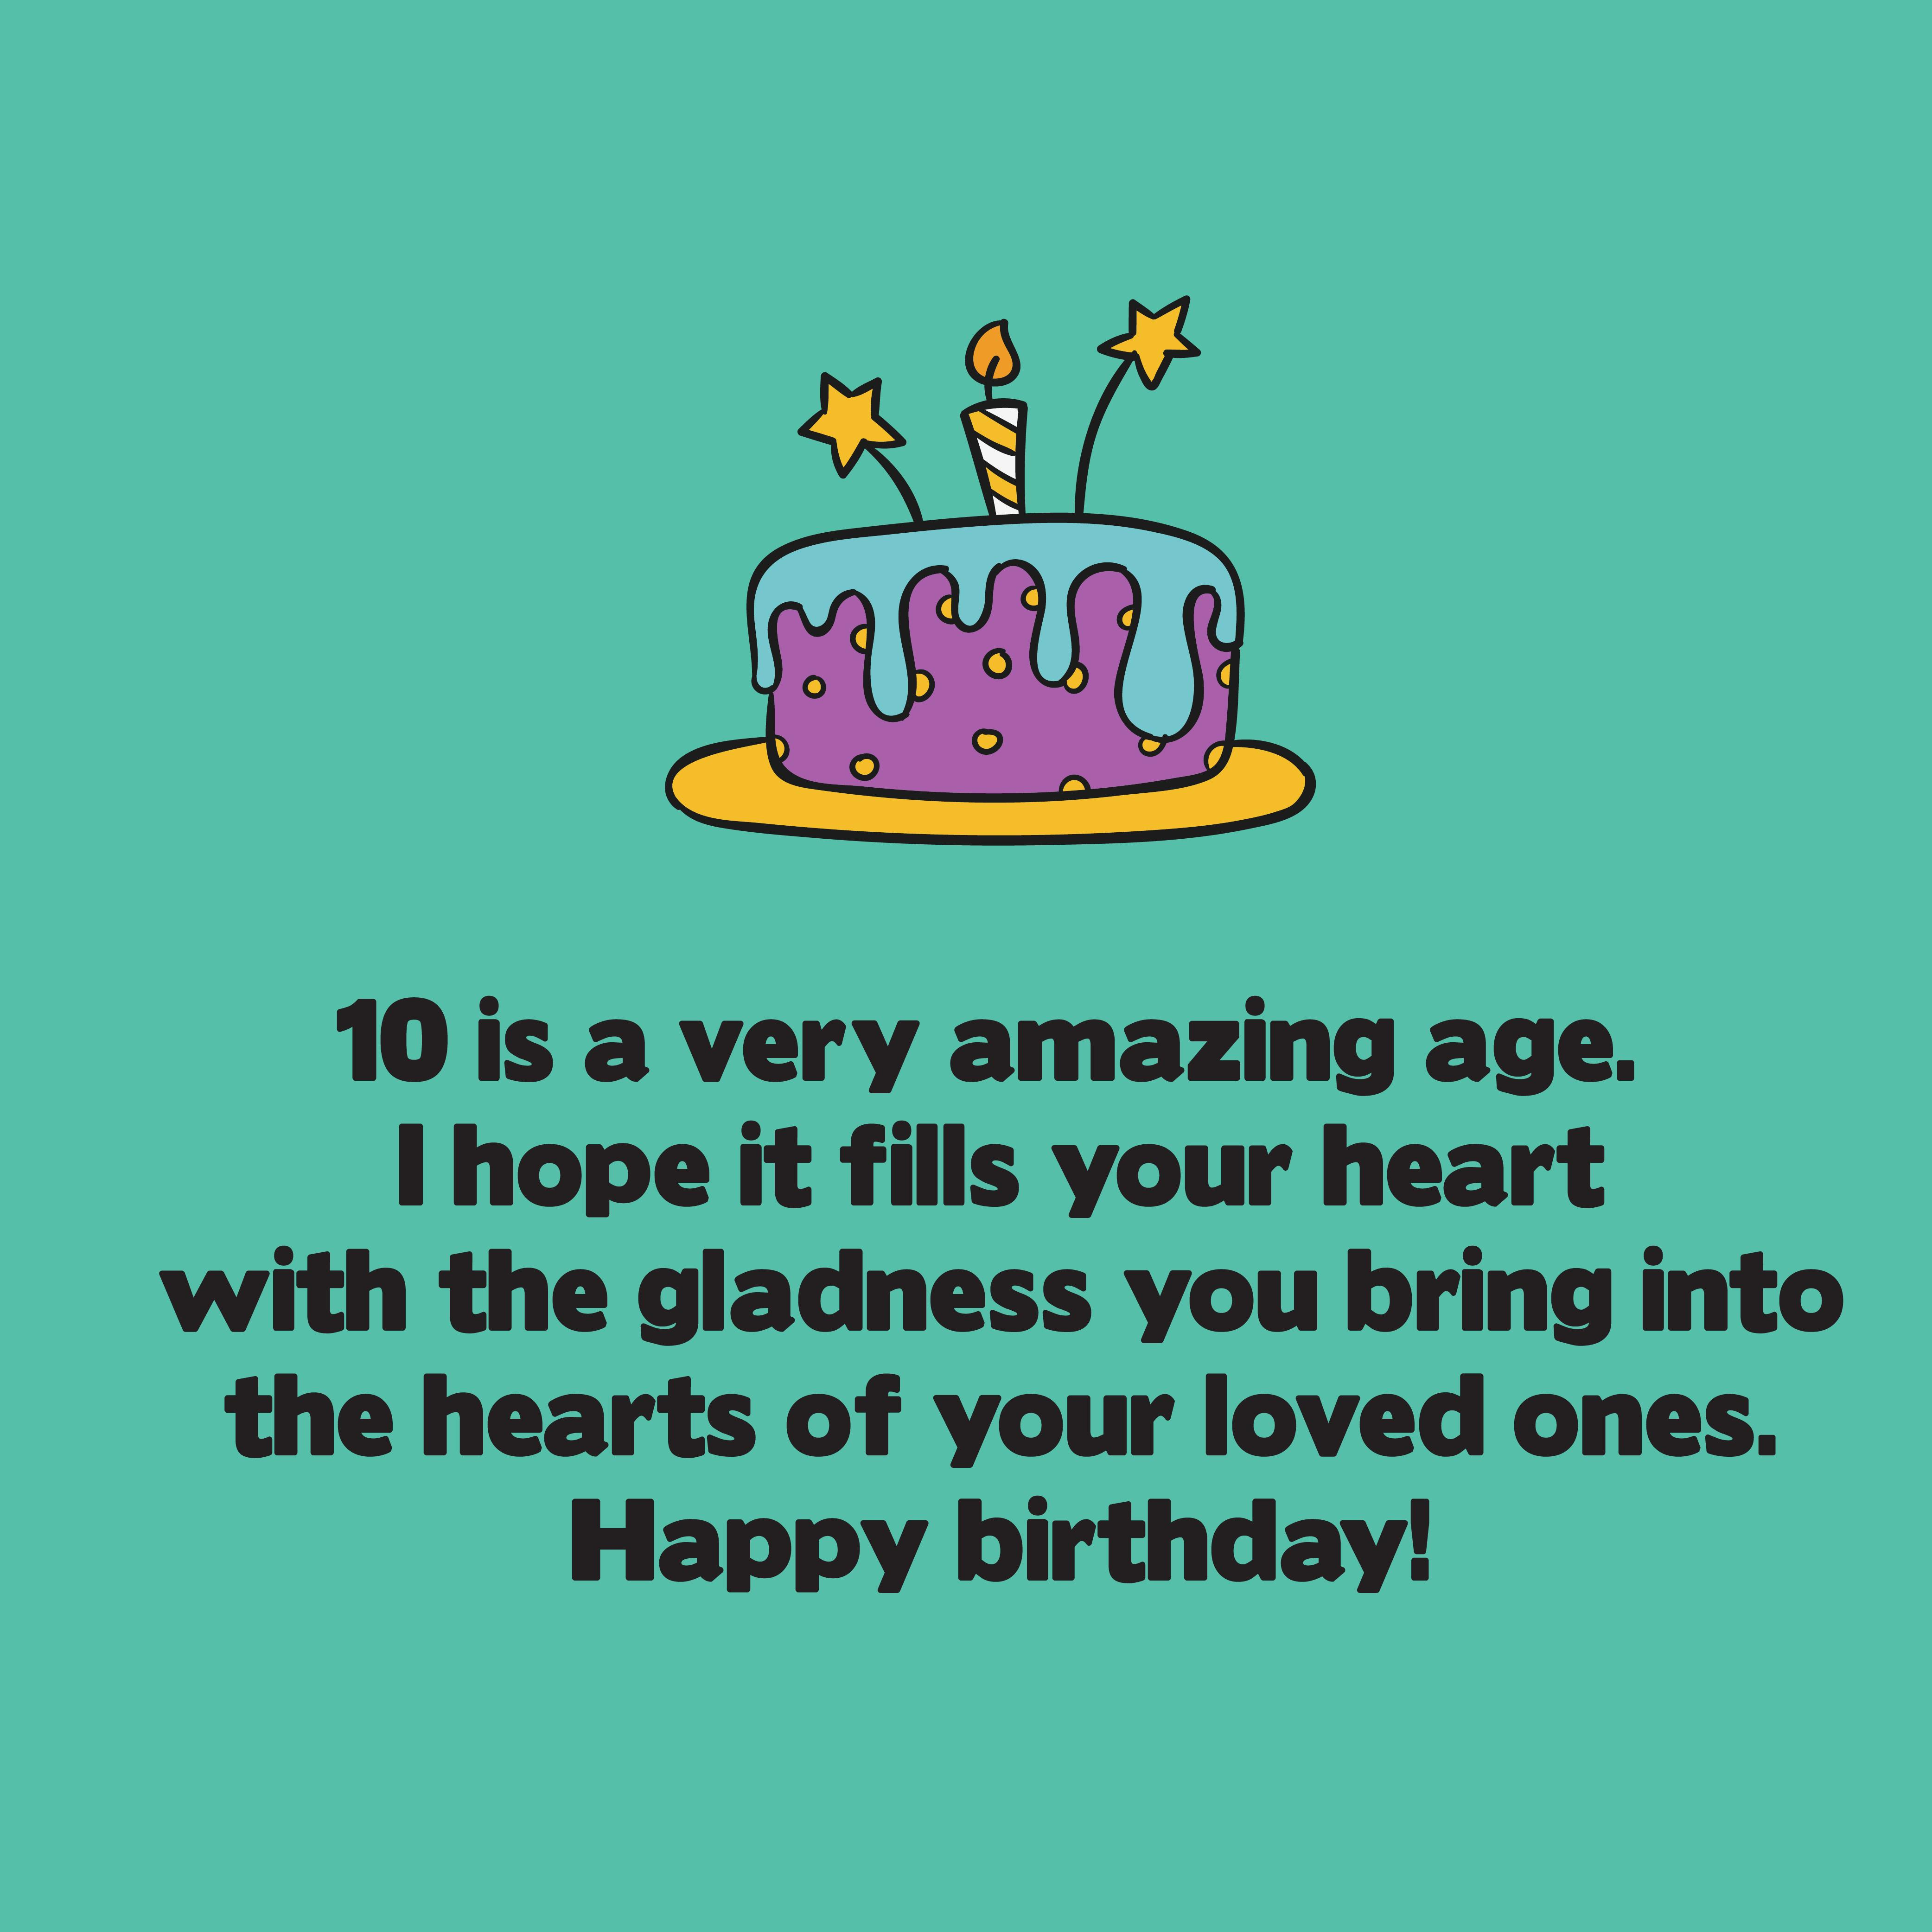 Cute Birthday Messages For 10 Years Old Top Happy Birthday Wishes